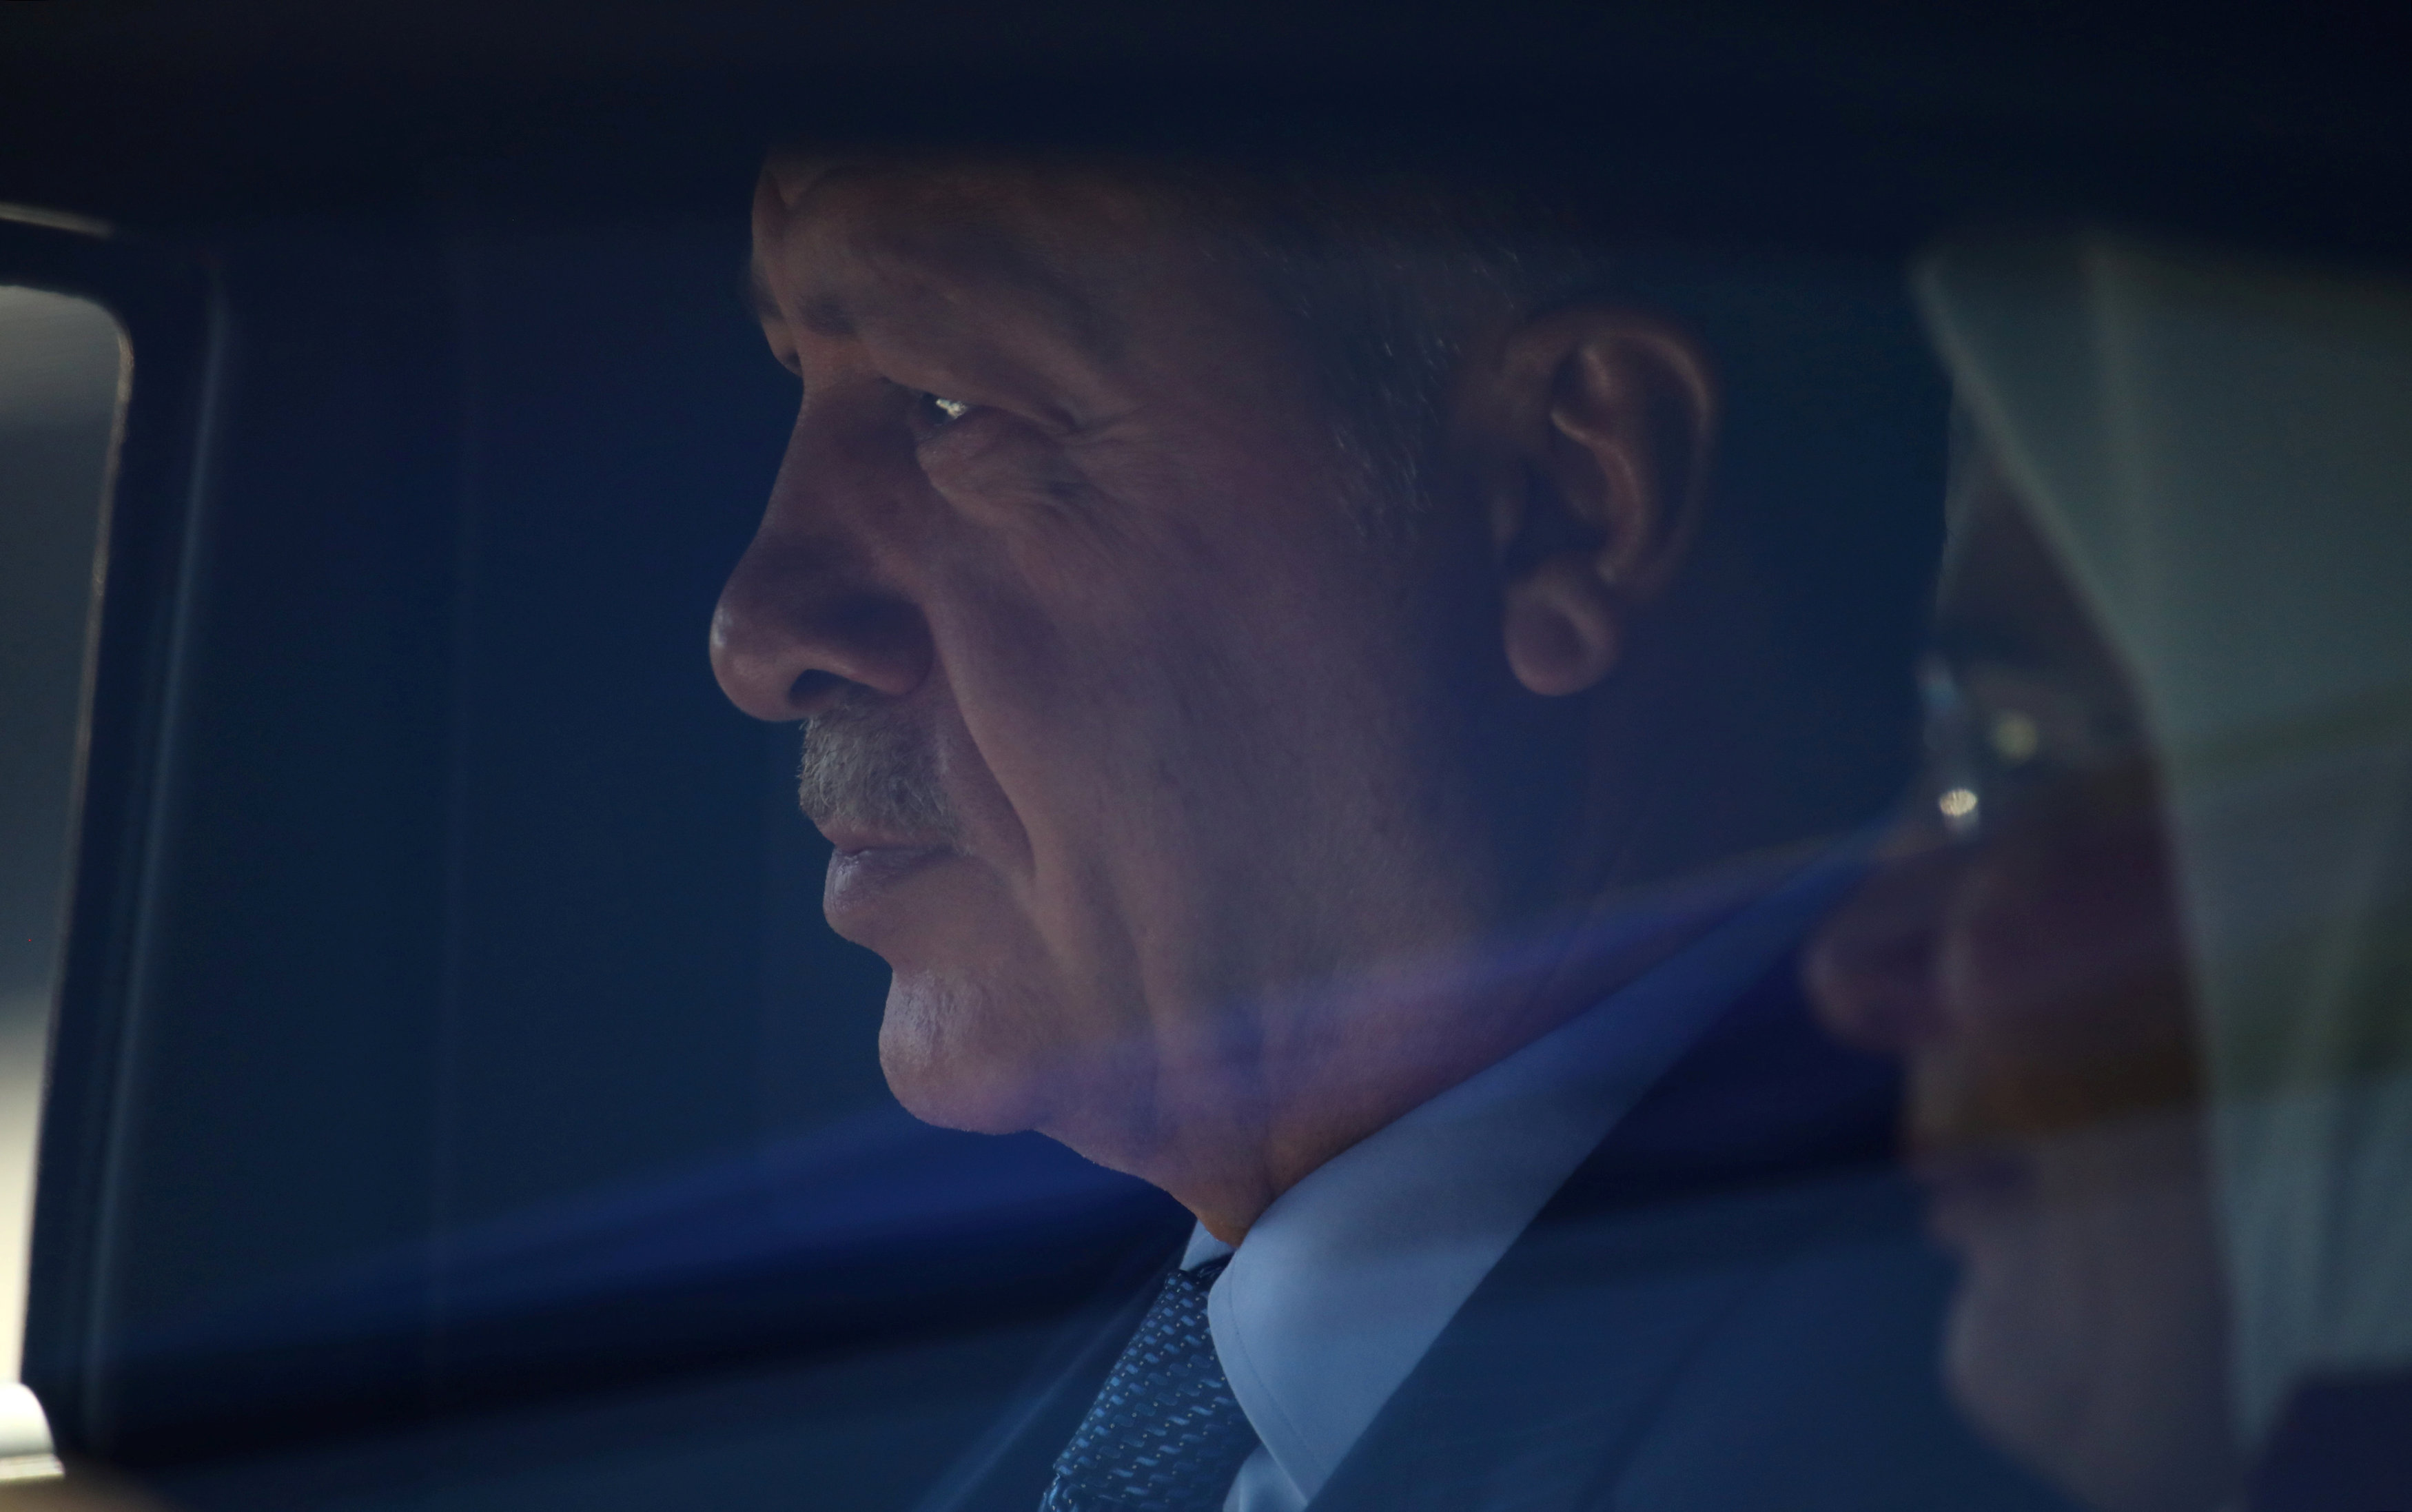 FILE PHOTO: Turkish President Tayyip Erdogan with his wife Emine are seen in a car as they arrive in Berlin, Germany, September 27, 2018. REUTERS/Hannibal Hanschke/File Photo